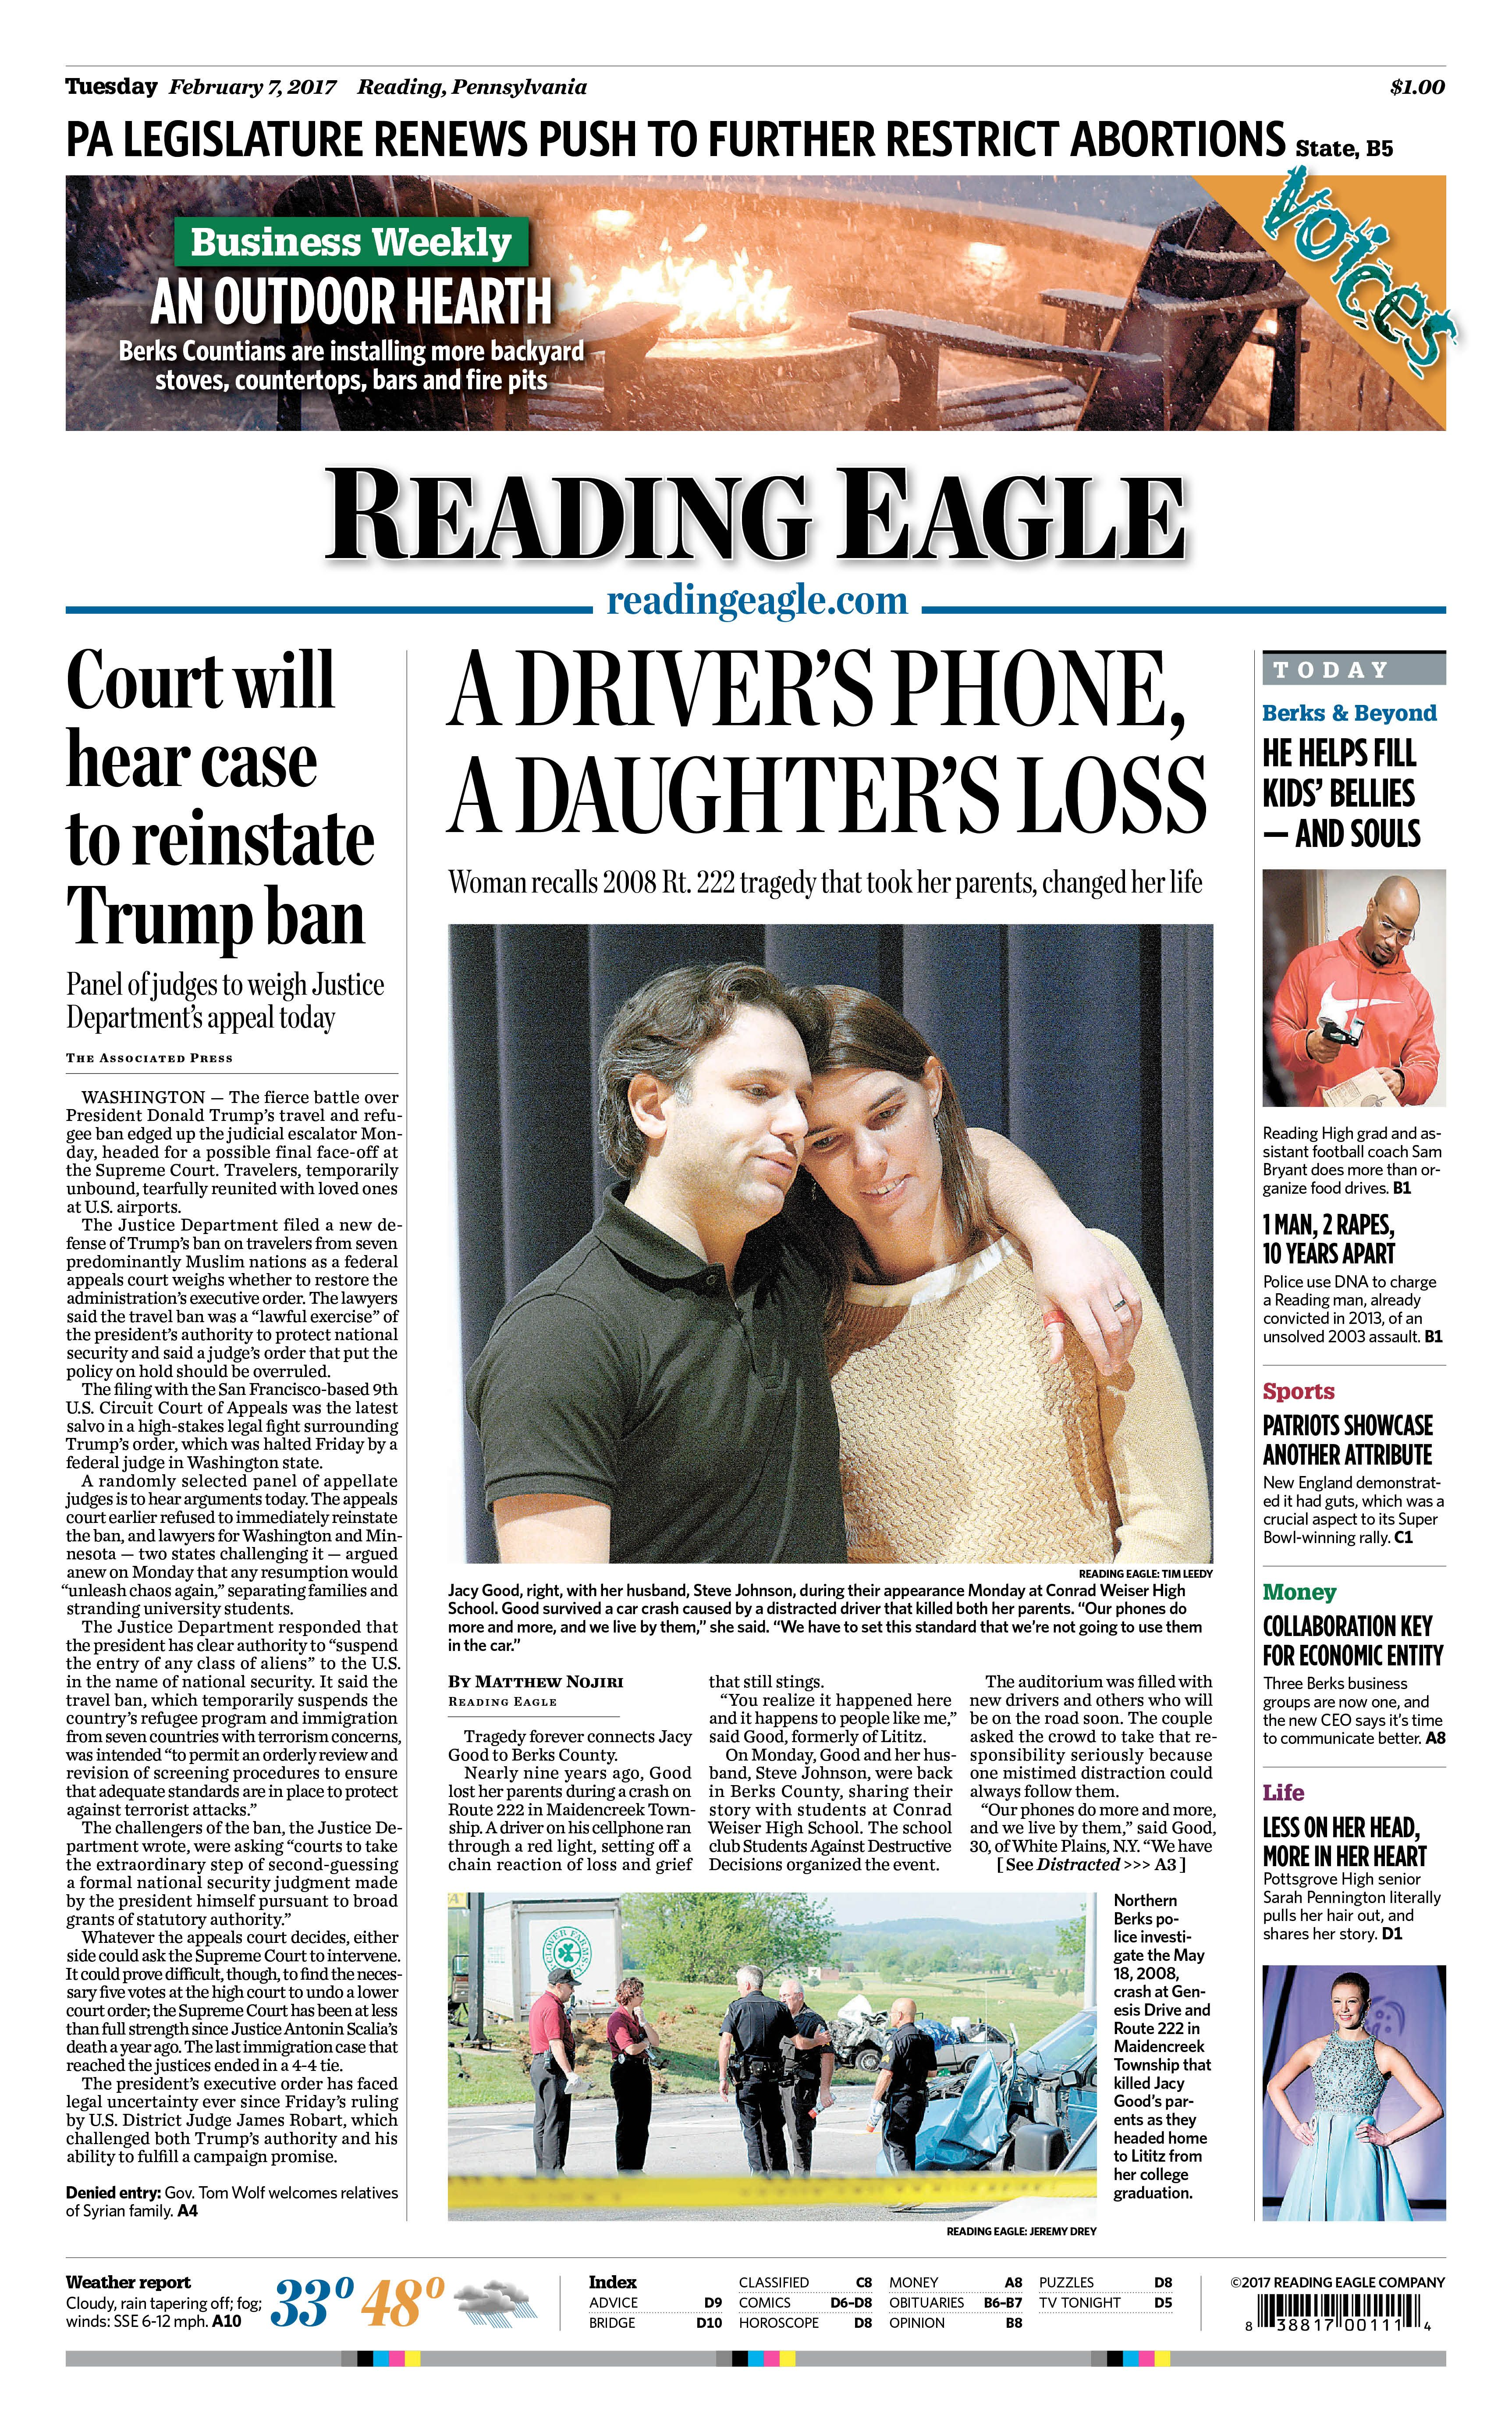 Today's front page. Feb. 7, 2017.